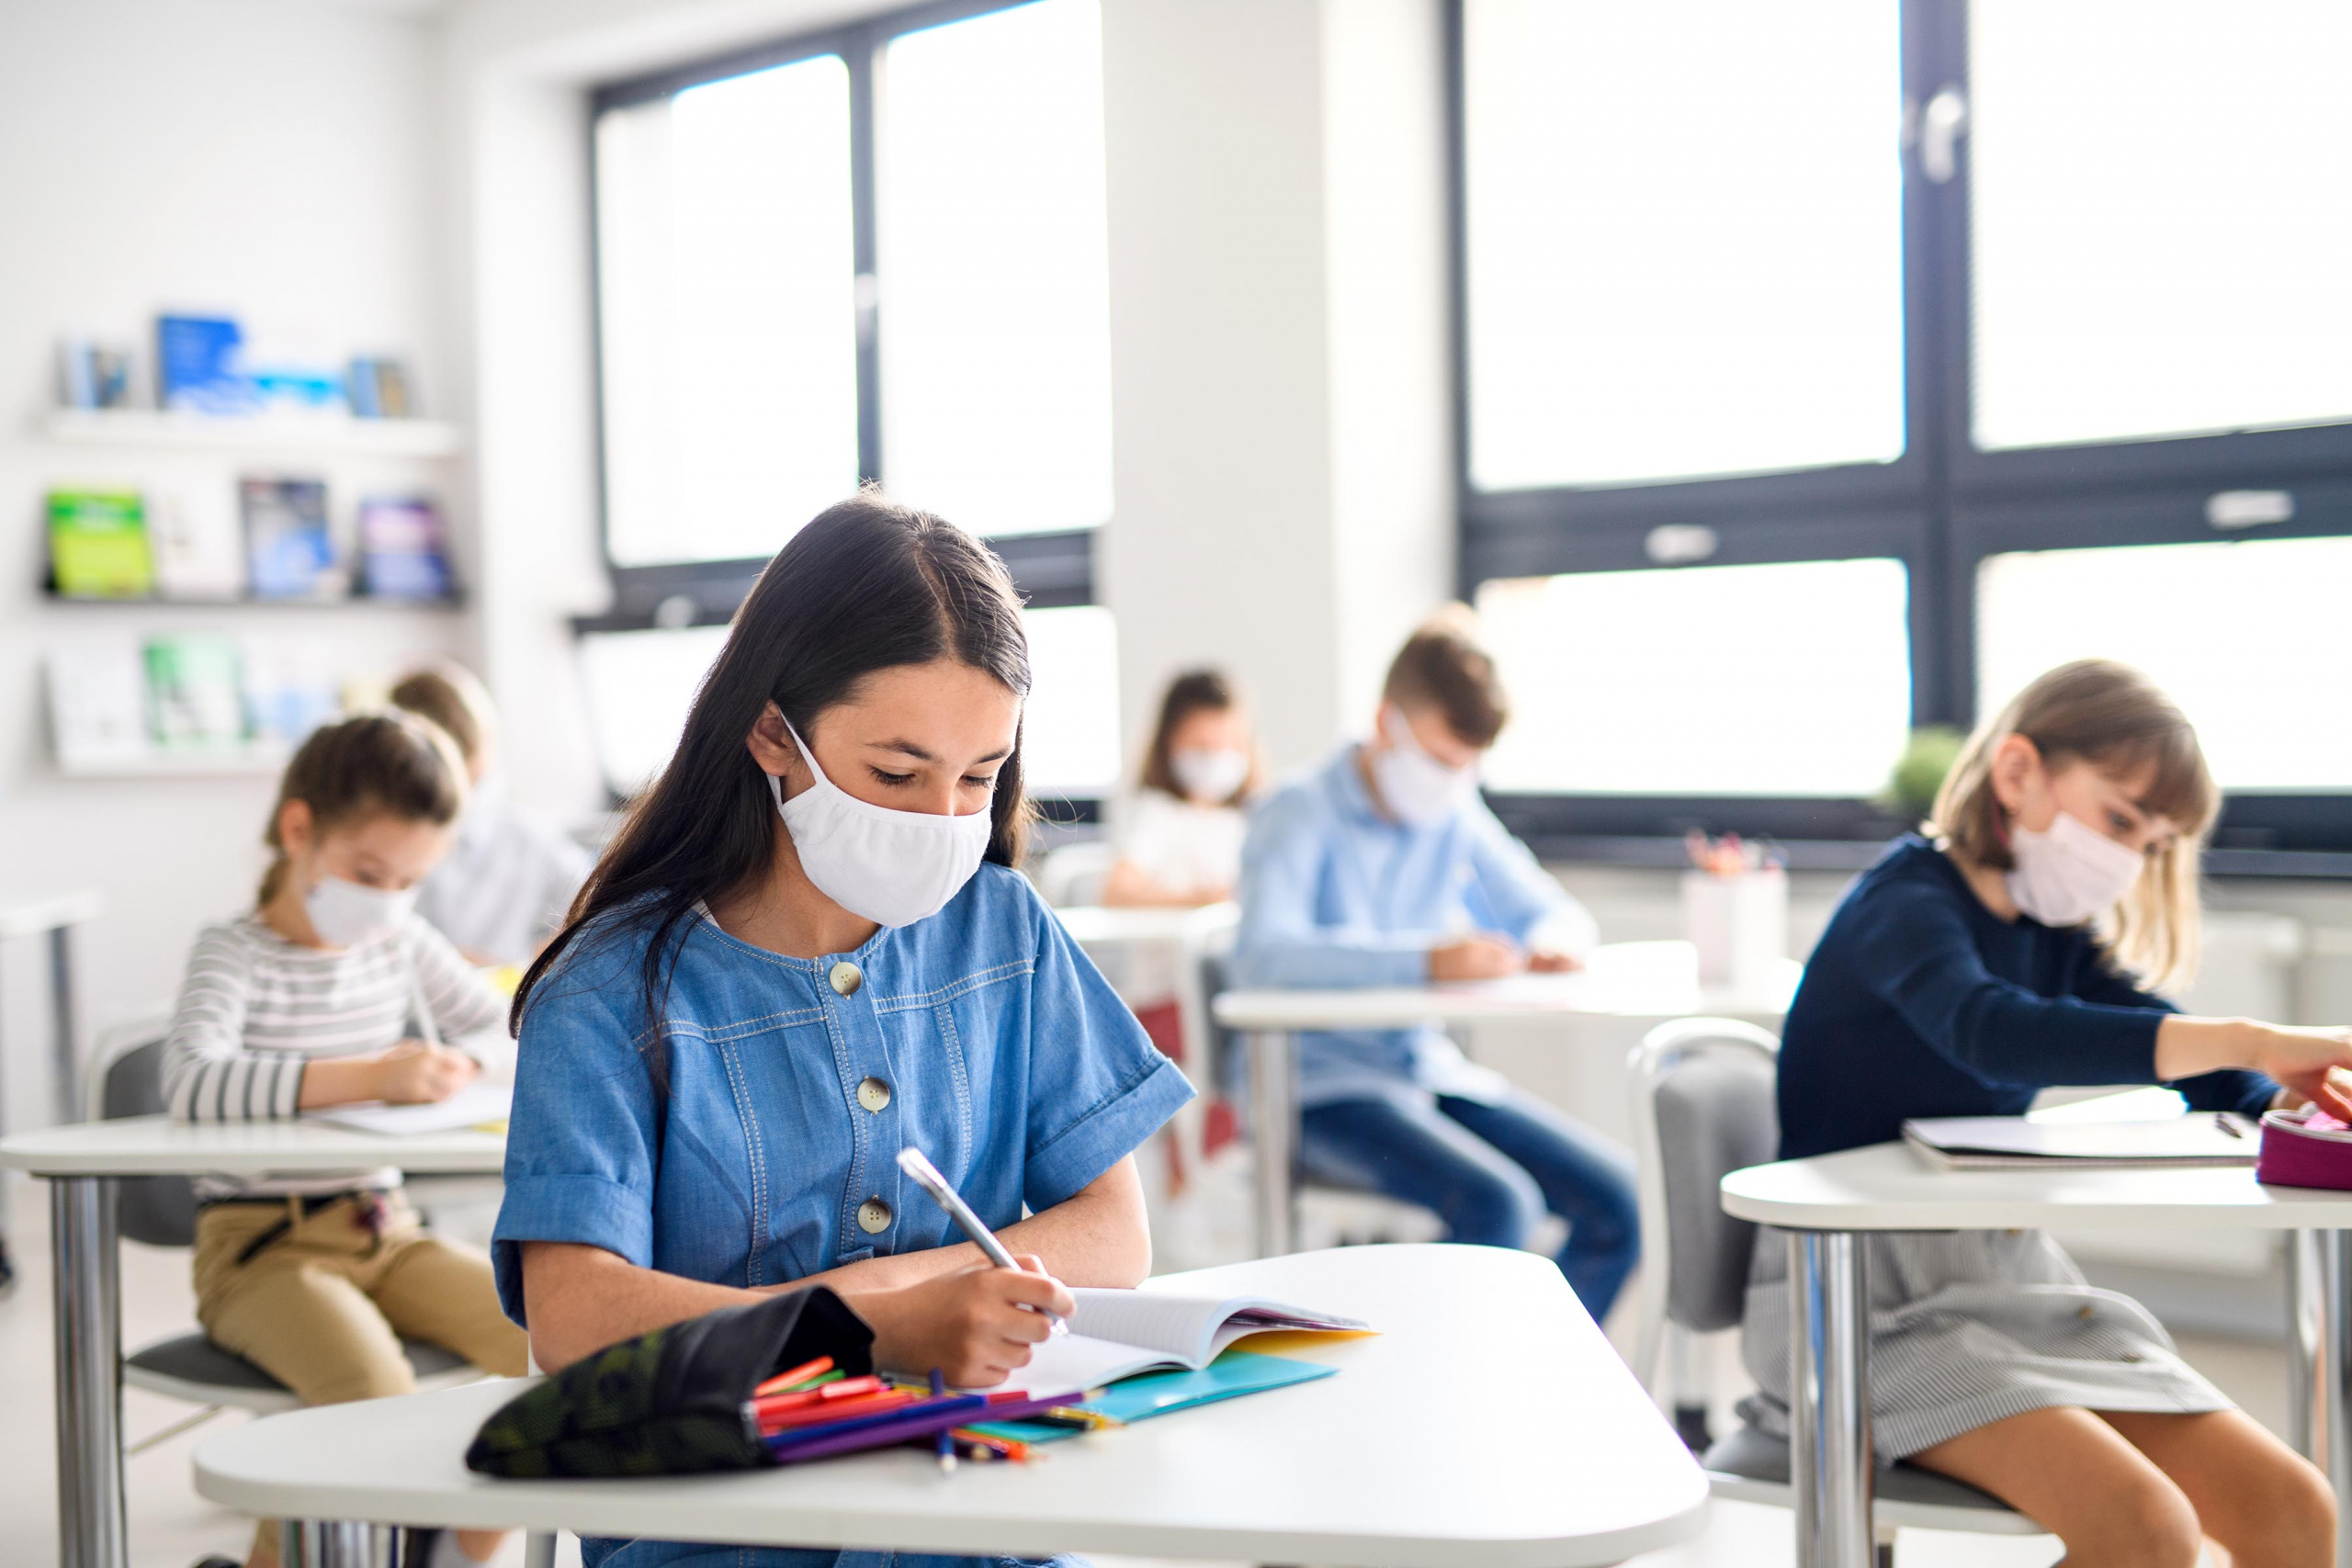 back to school essentials, middle school children students working the classroom wearing masks